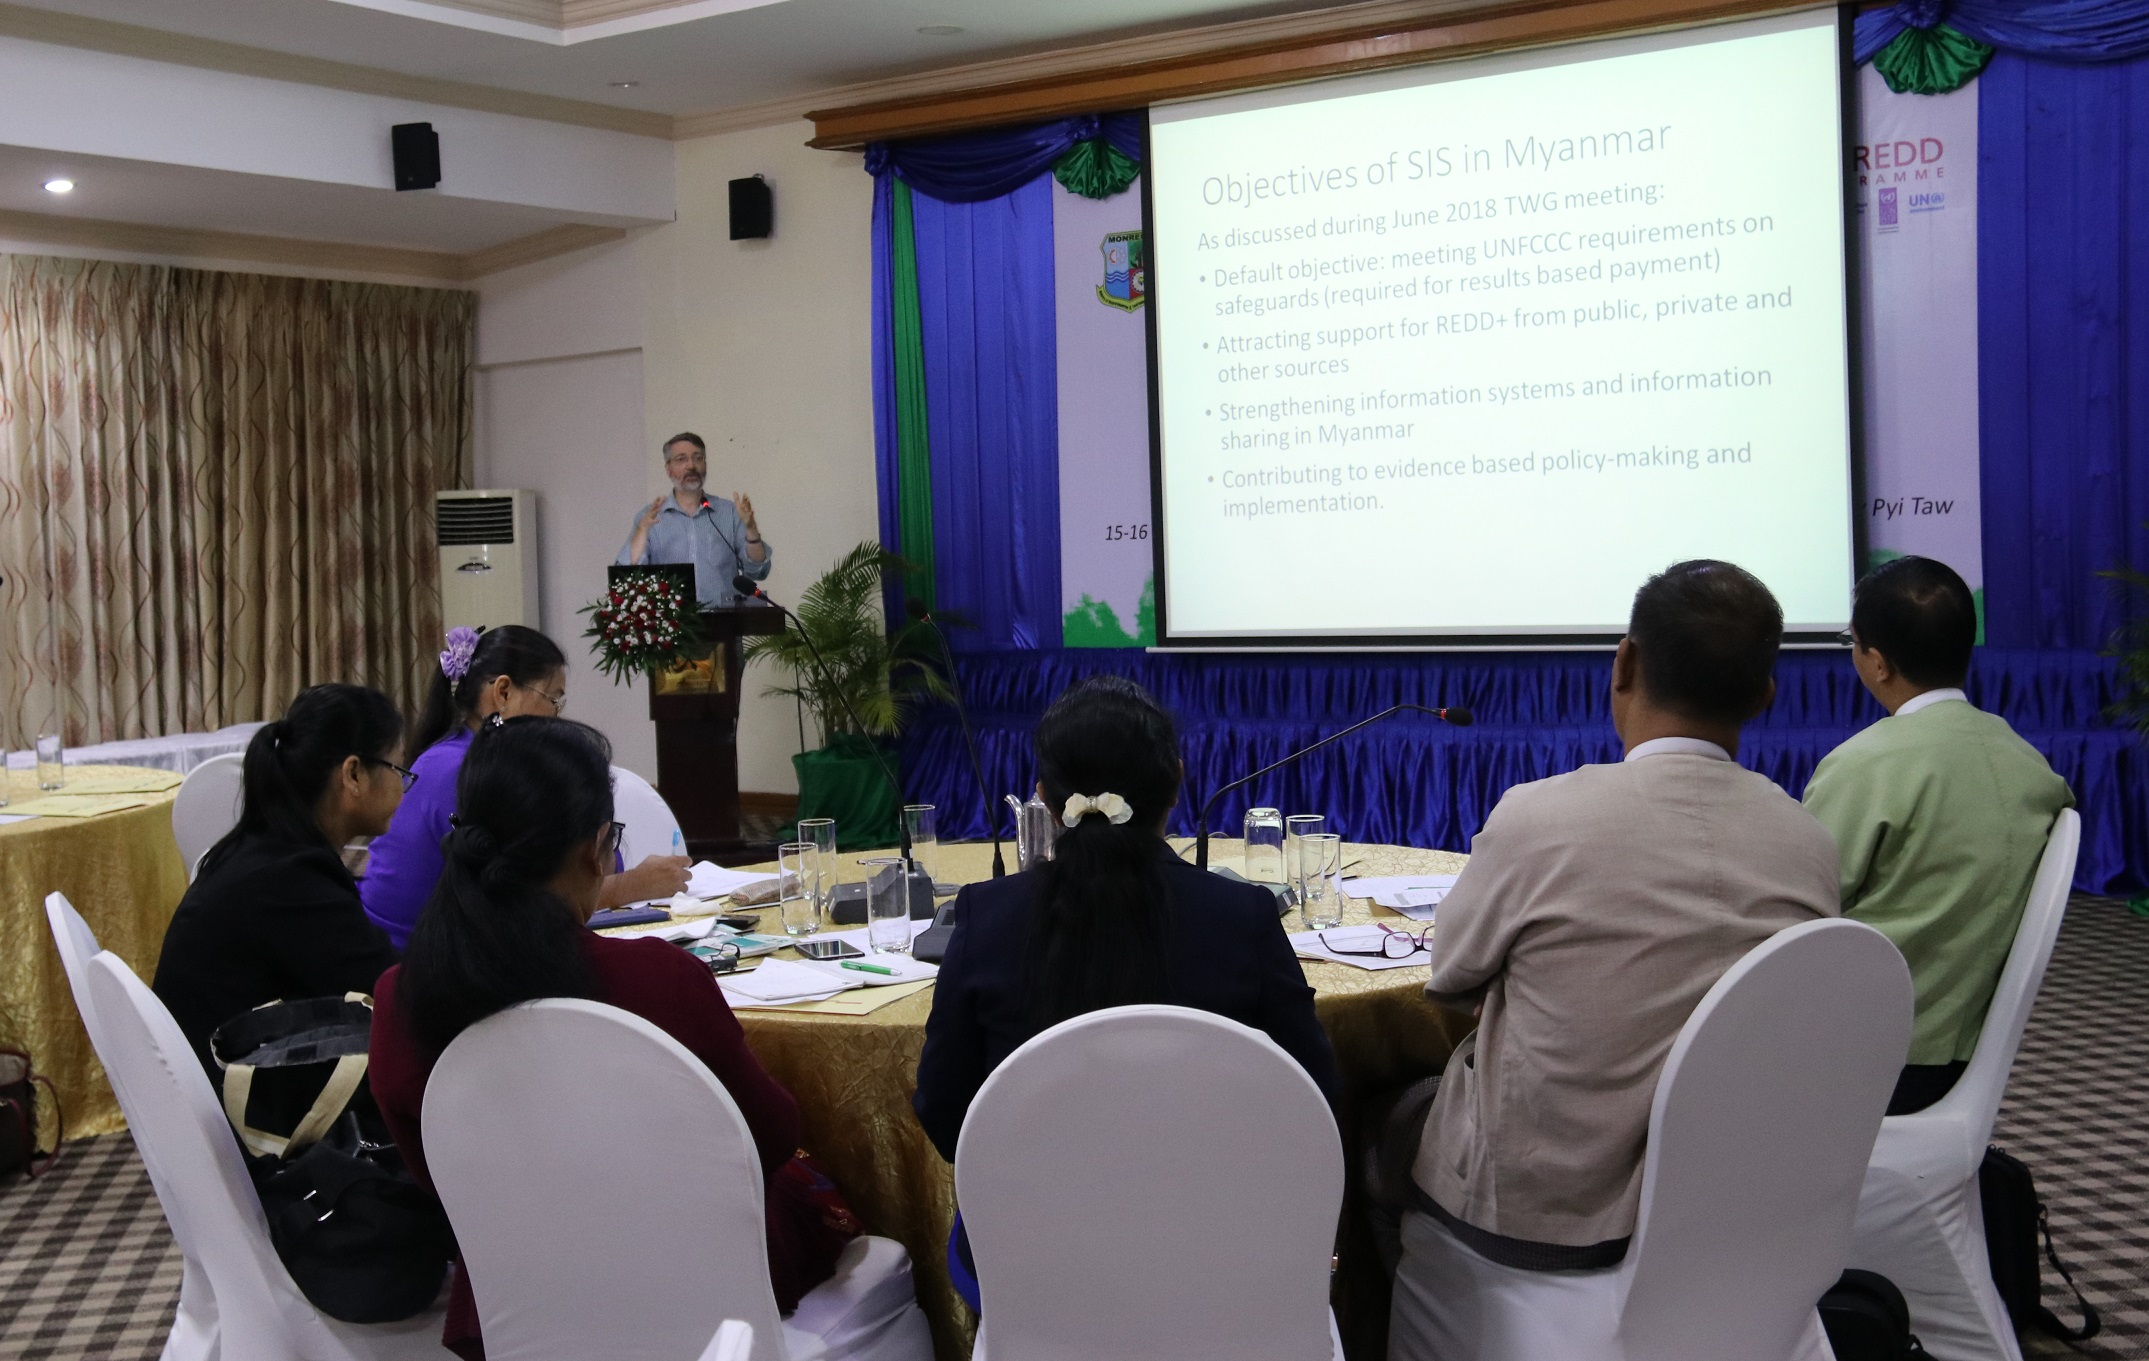 Myanmar SIS Information Needs Workshop